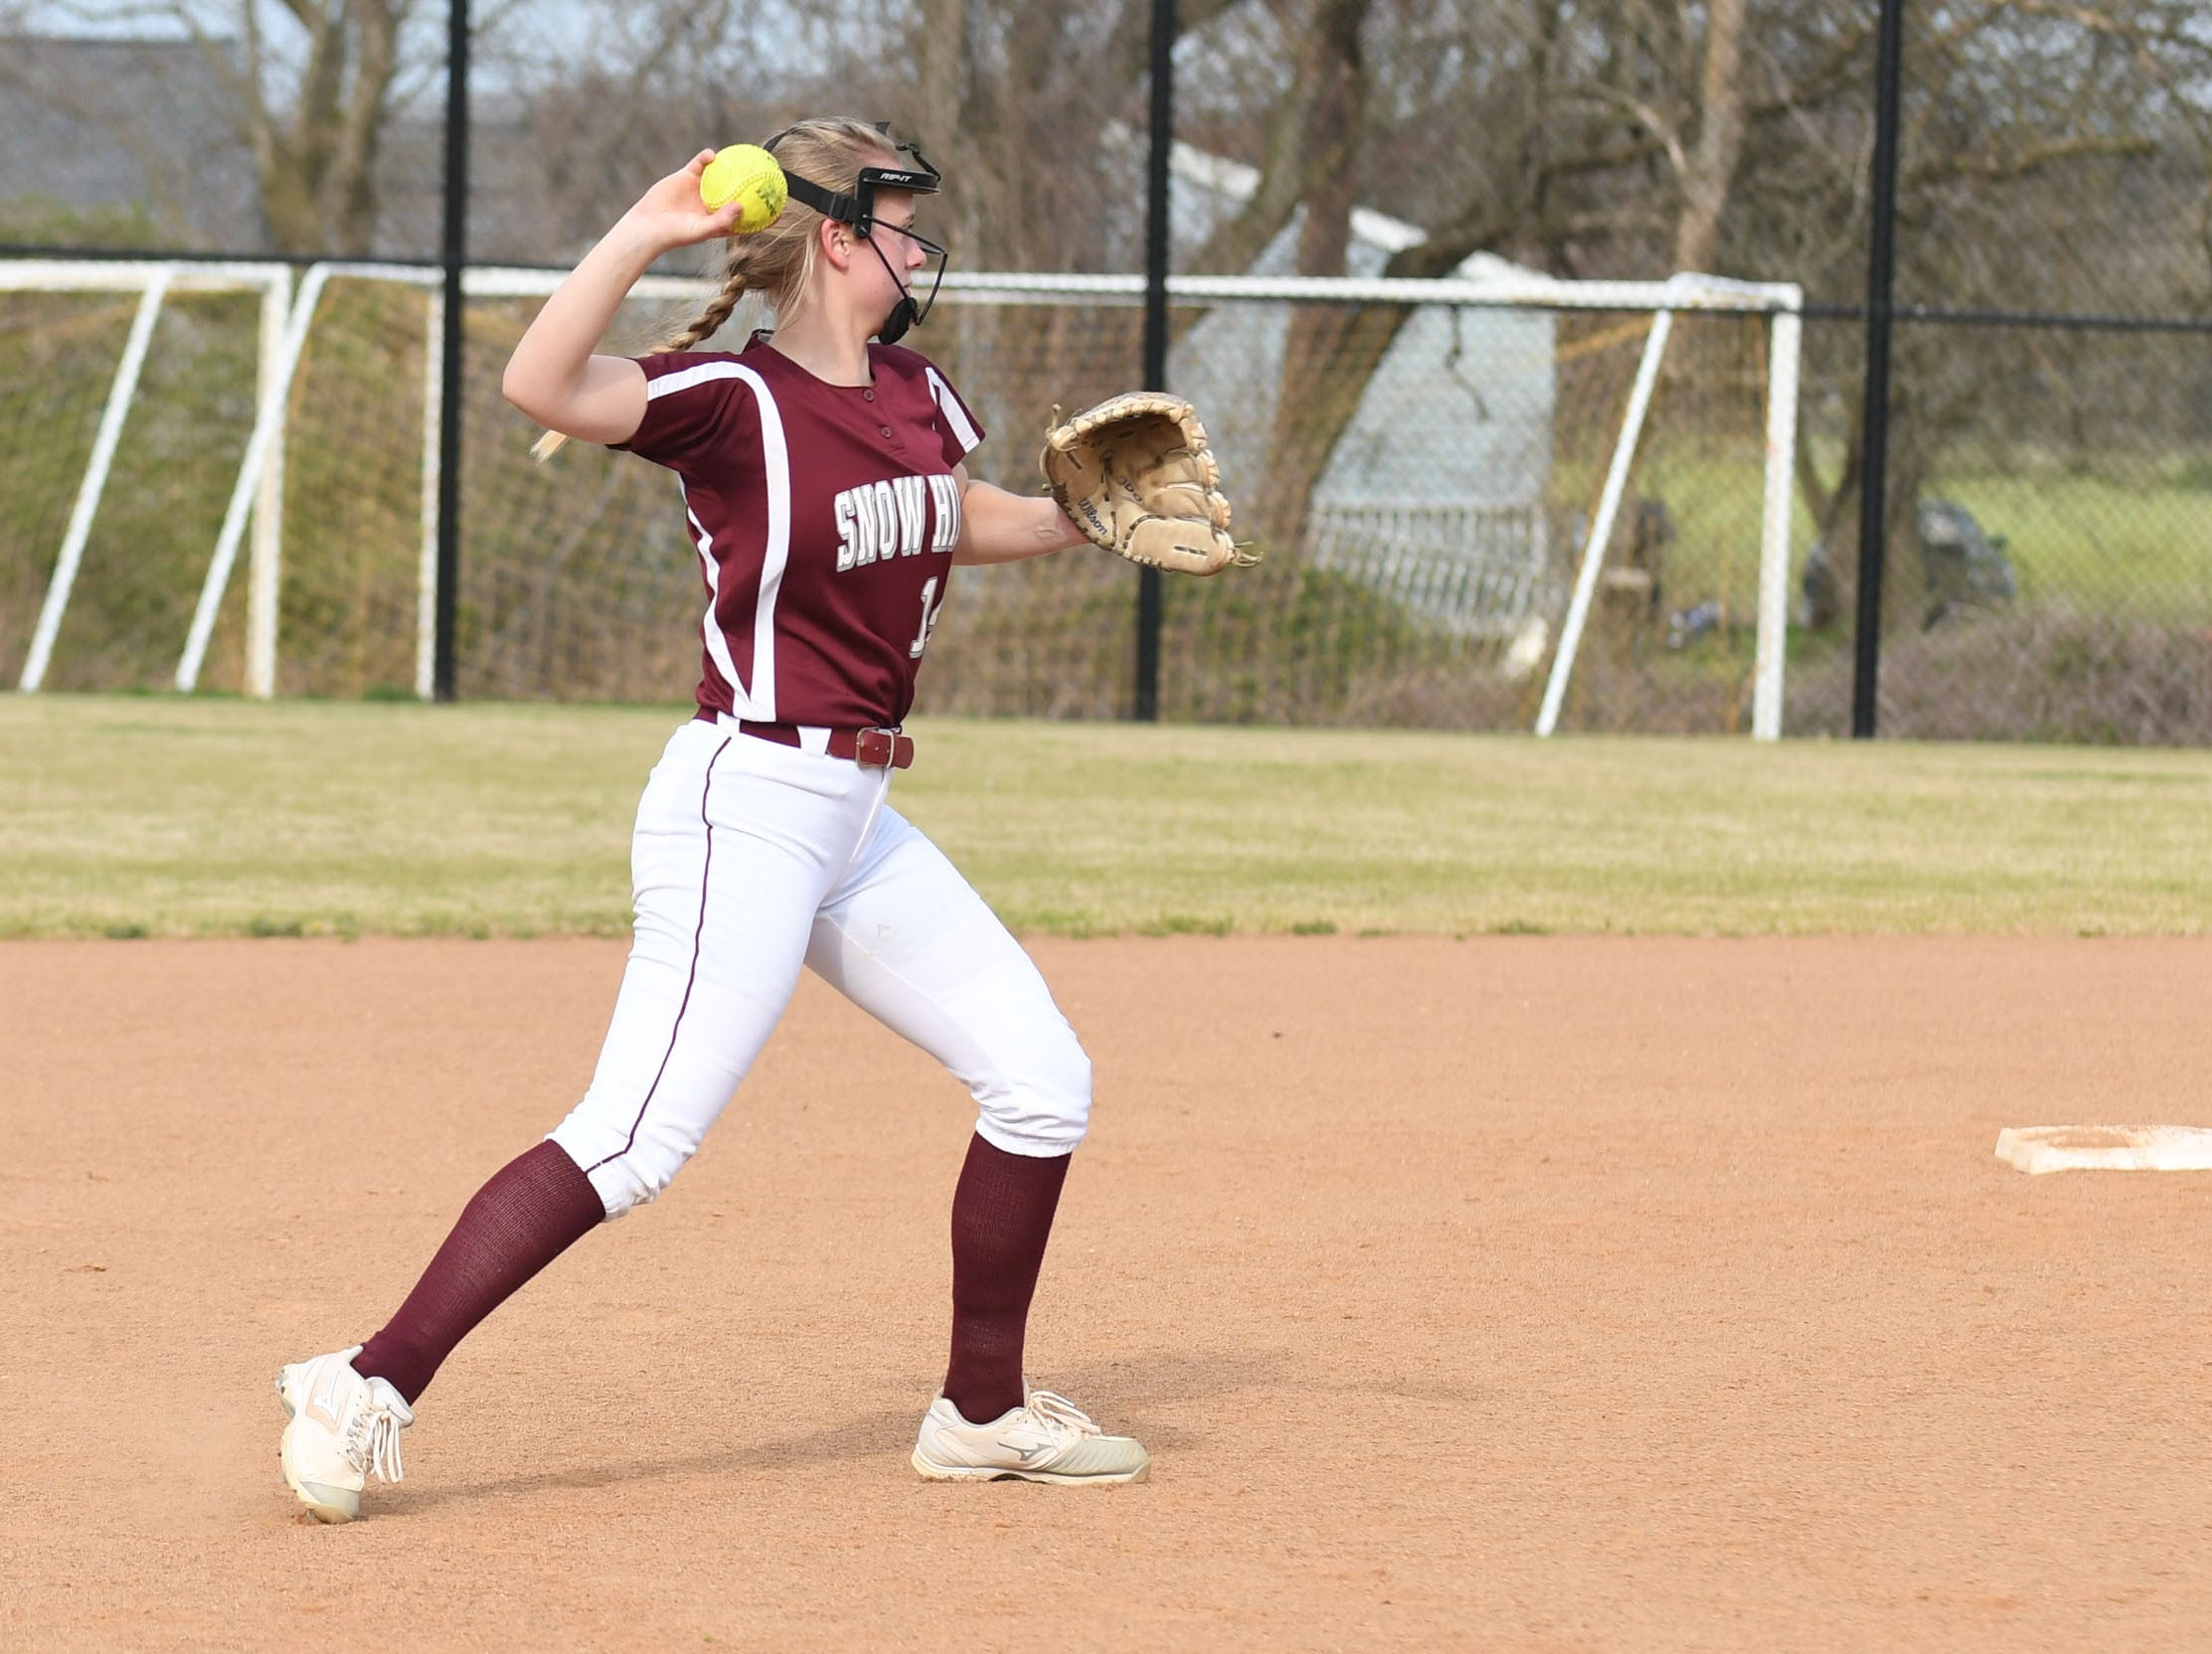 Snow Hill's Hailey Farlow with the throw to first against Mardela on Monday, April 8, 2019 in Snow Hill, Md.